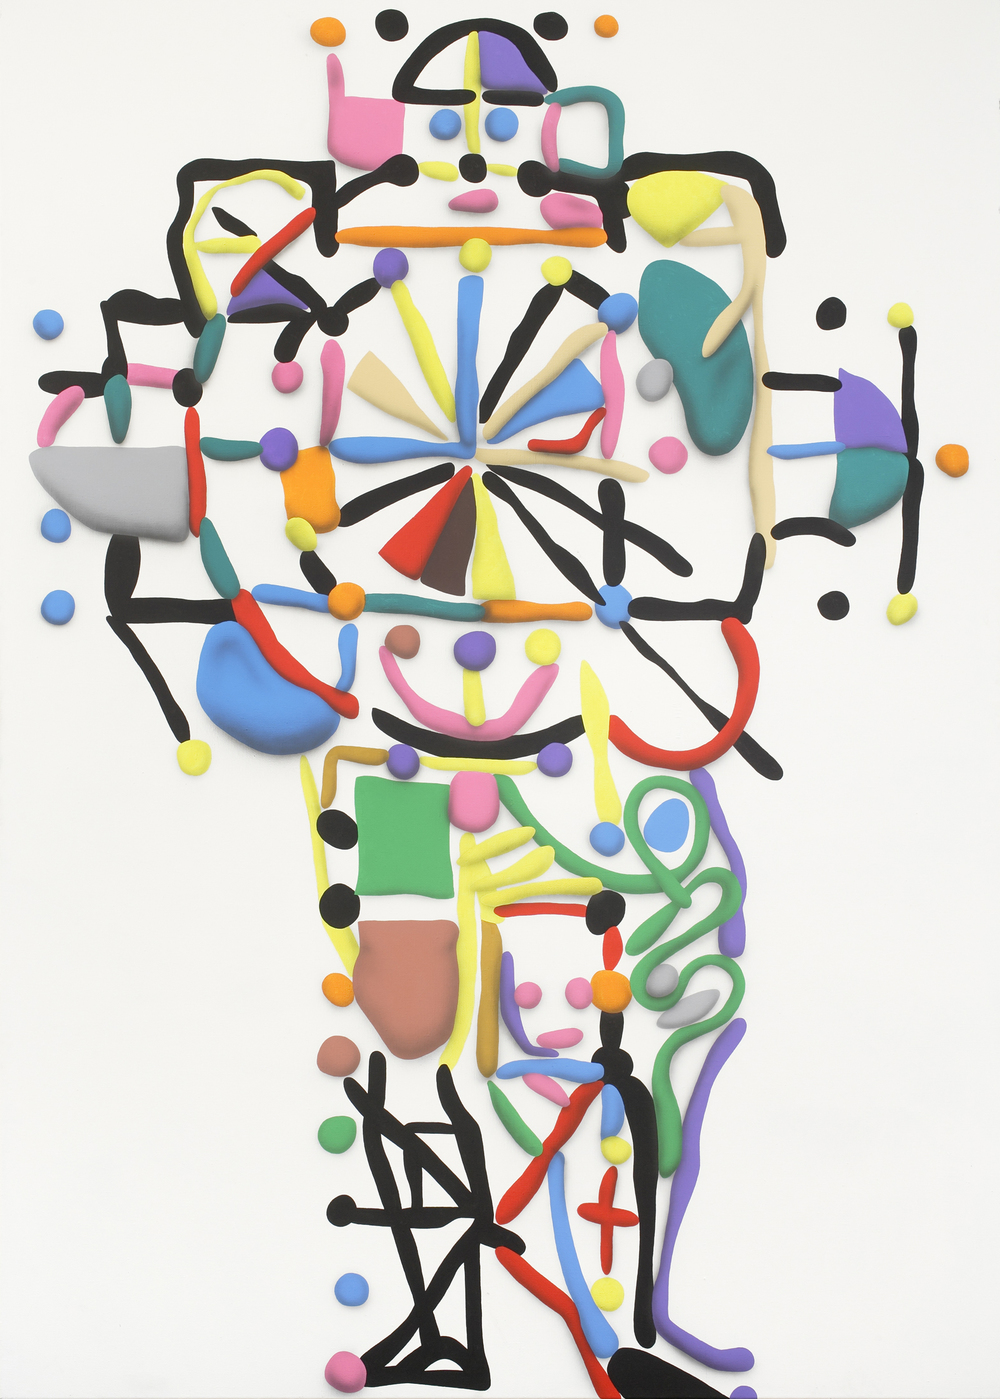 Man And The Cross, 2010, acrylic on canvas, 260 x 185 cm